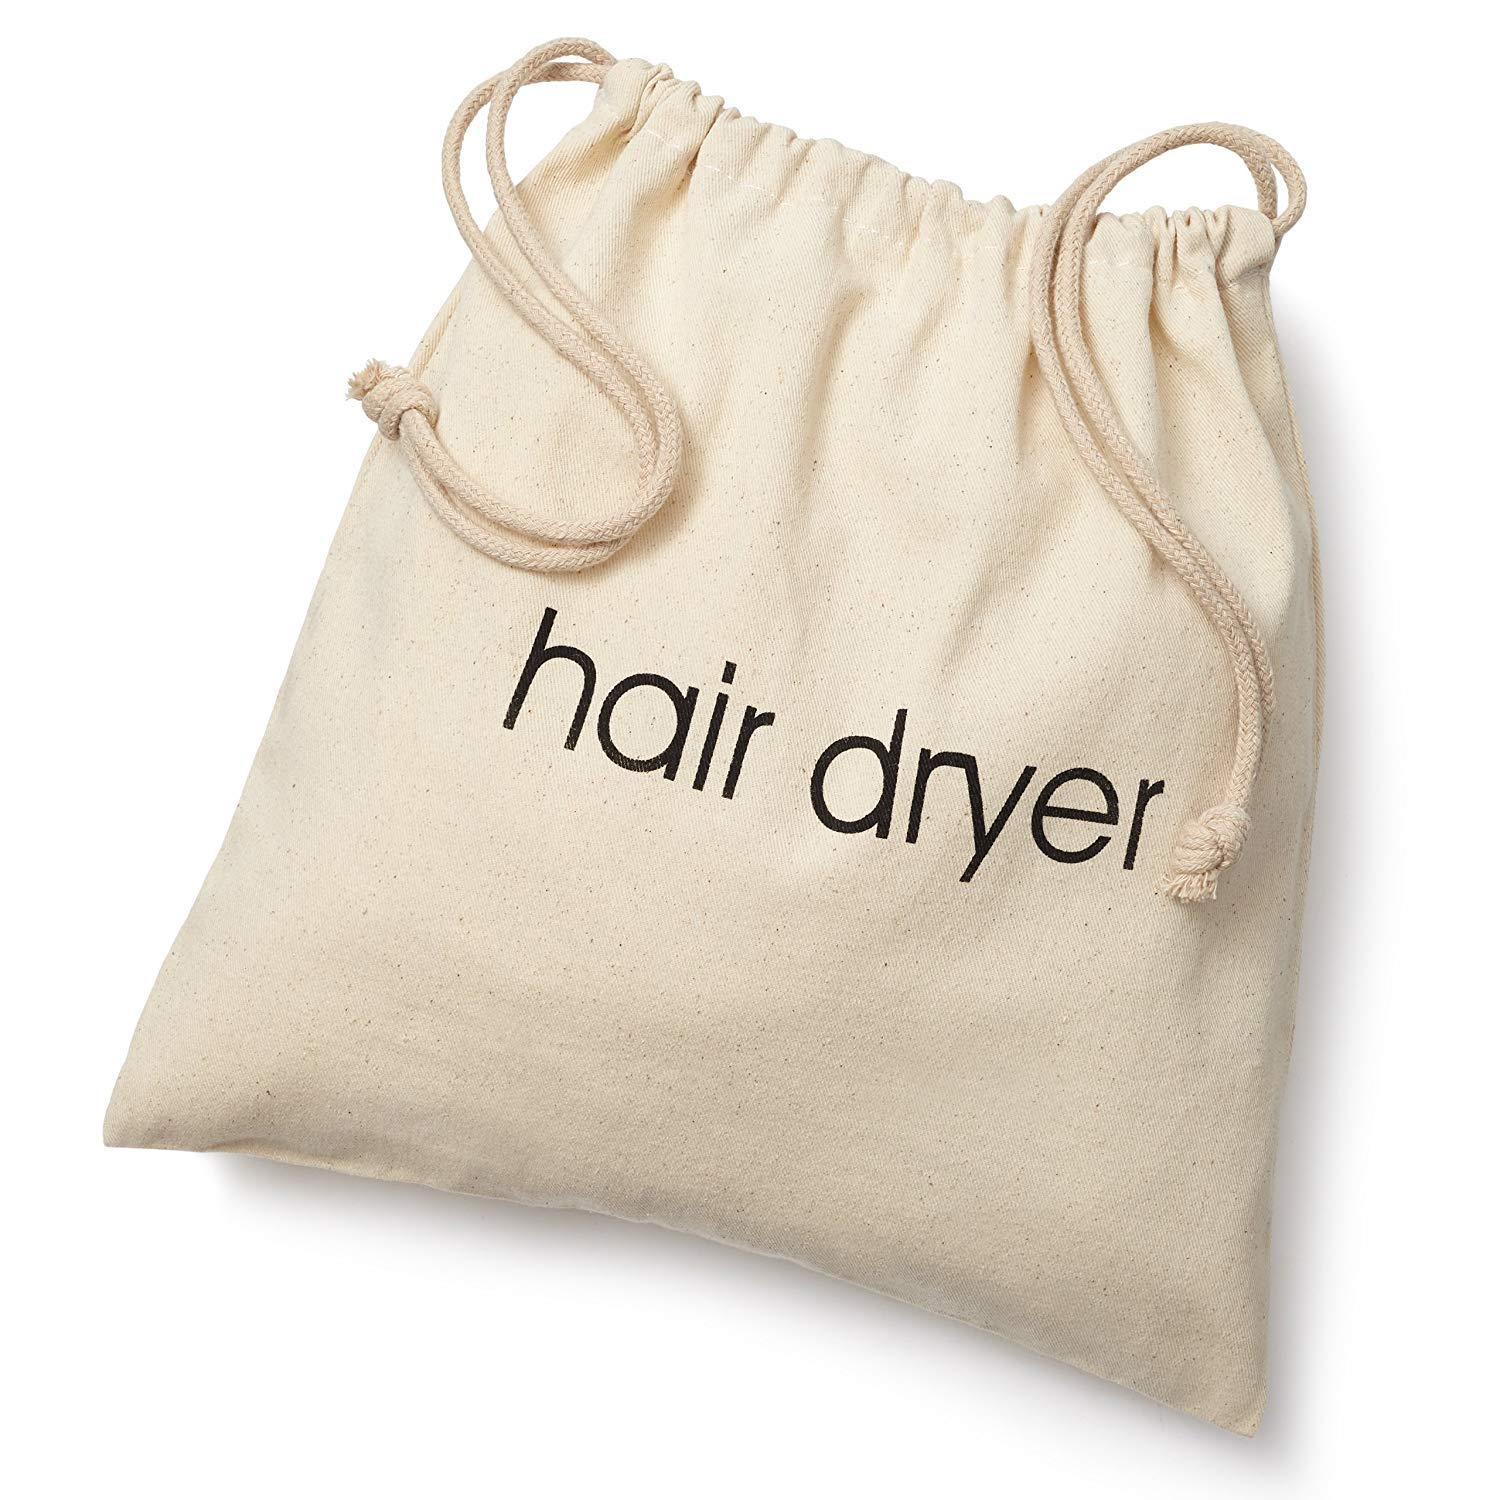 "Hair Dryer Bags by Radiant Complex: Perfect for travel, and safe storage of any hair dryer, curling iron, straightener, brush or makeup bag. Convenient 12.25"" x 13.25"" size fits any hair accessory."